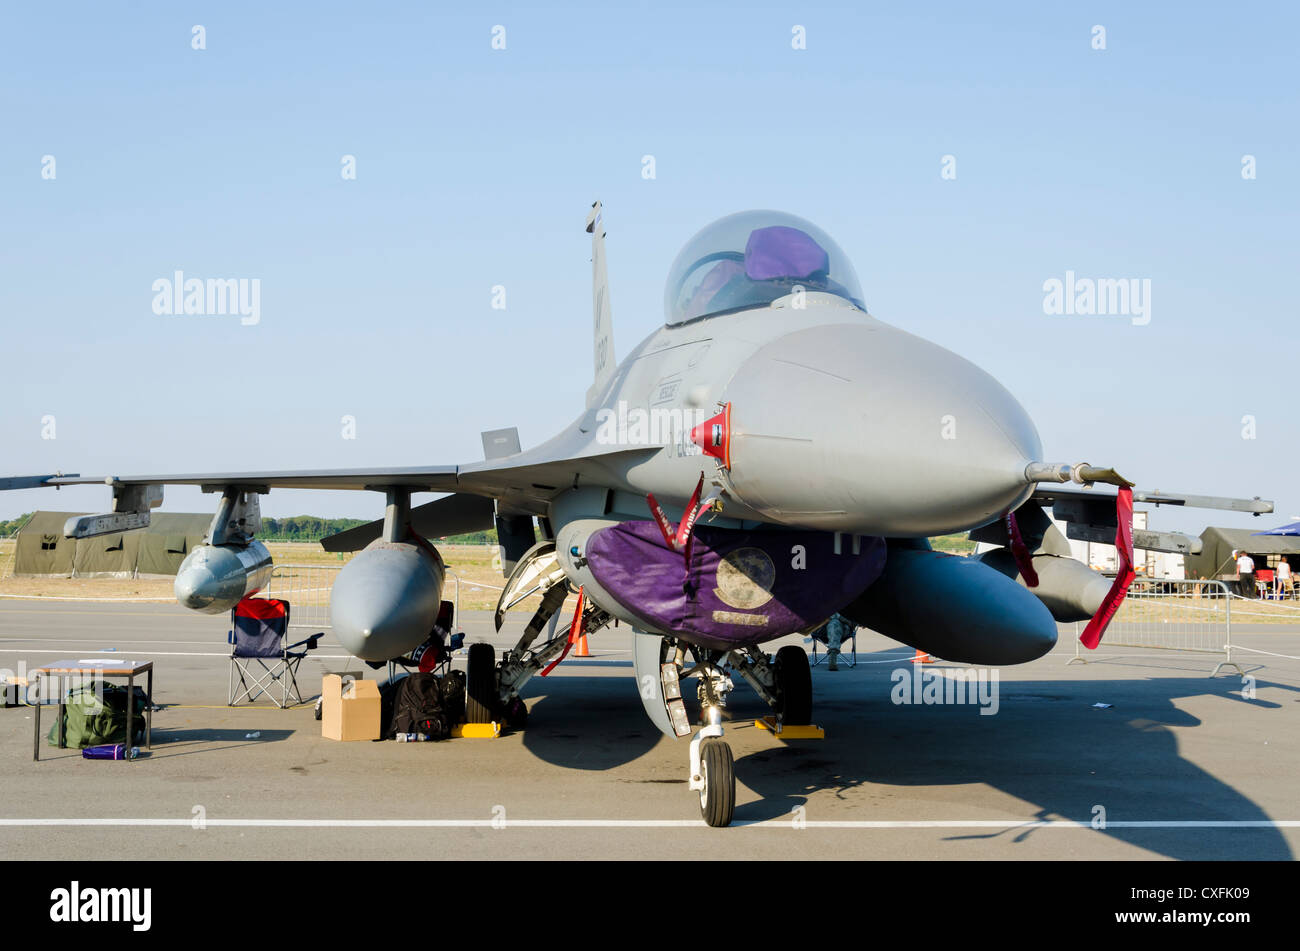 Aircraft F-16 Fighting Falcon on the Airshow Batajnica 2012 in Belgrade, Serbia on September 2, 2012. Stock Photo